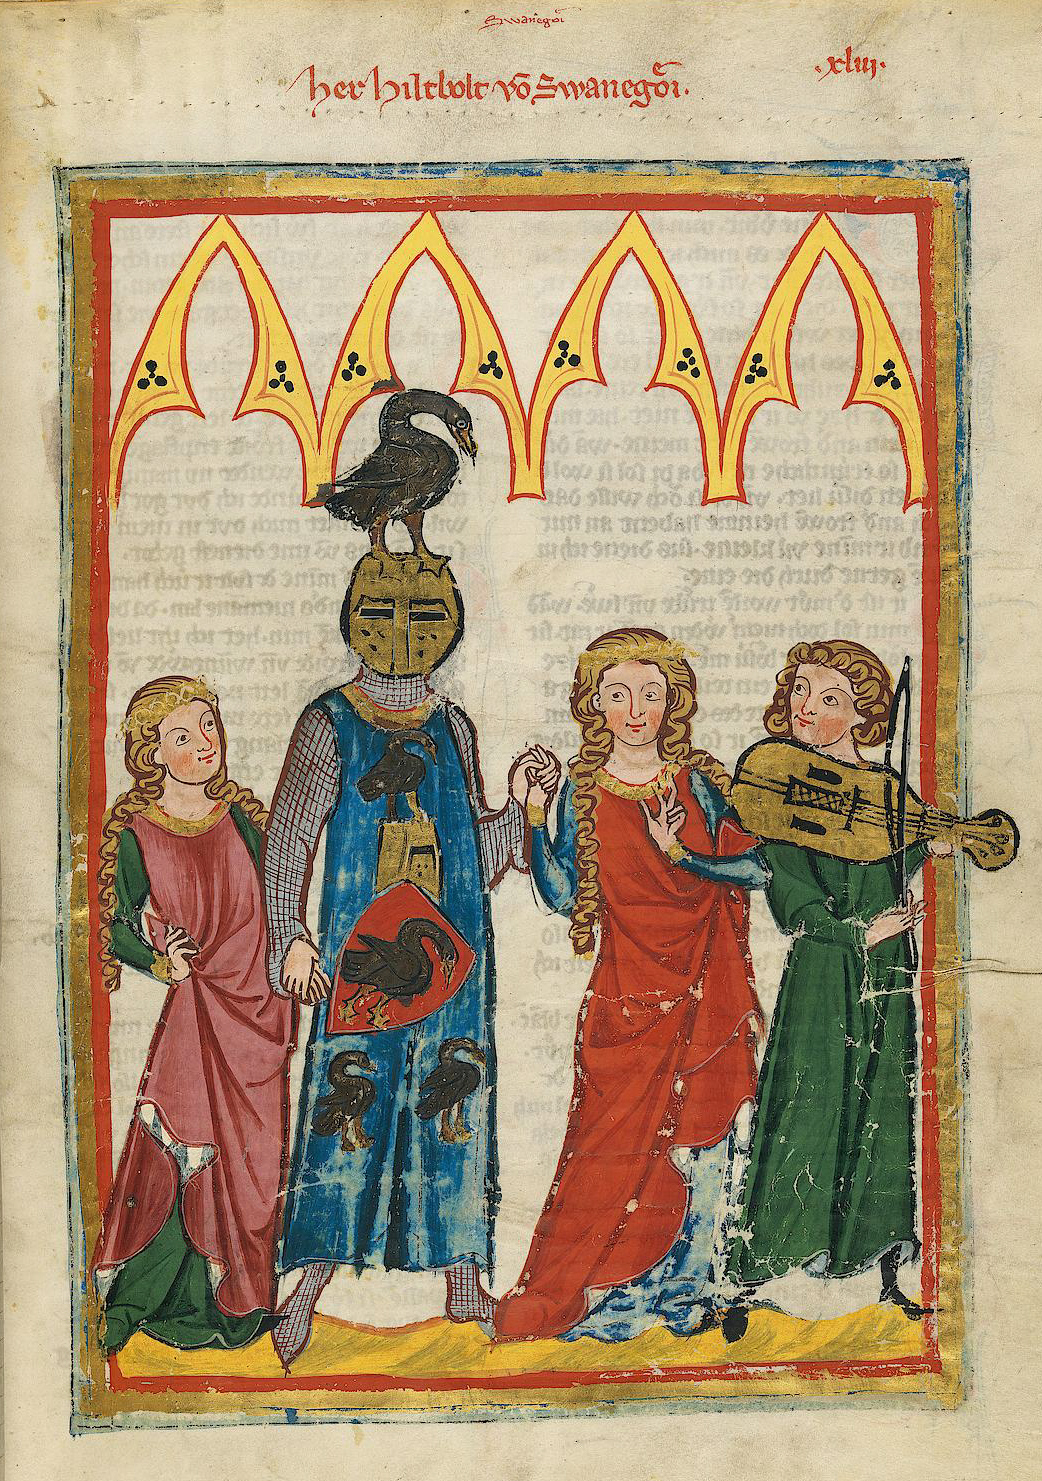 manuscript image: two women have loose waist-length hair